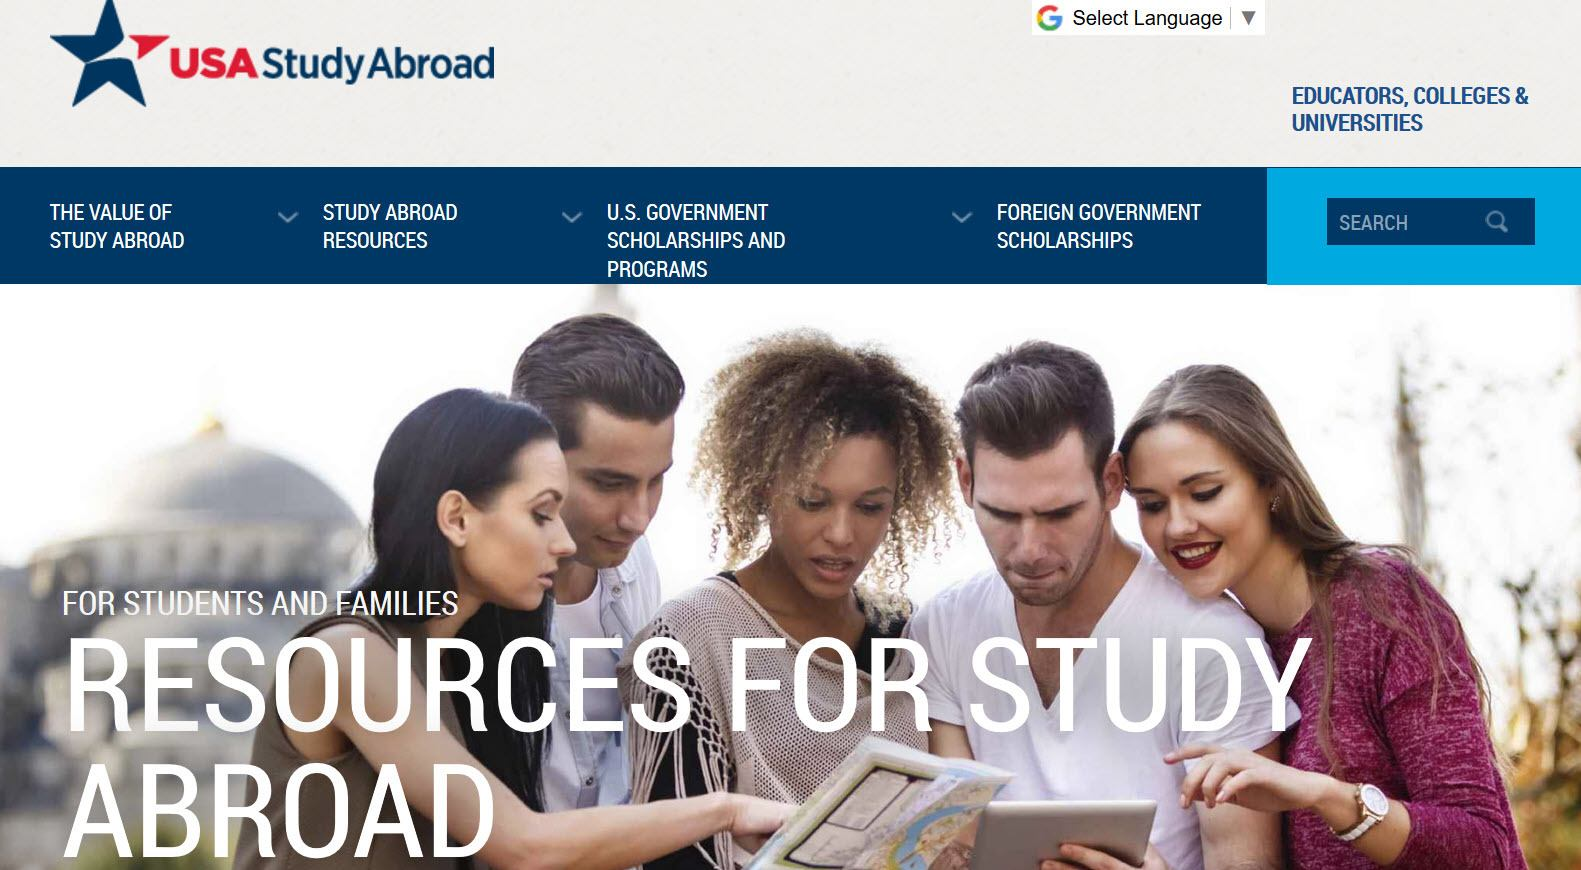 USA Study Abroad website